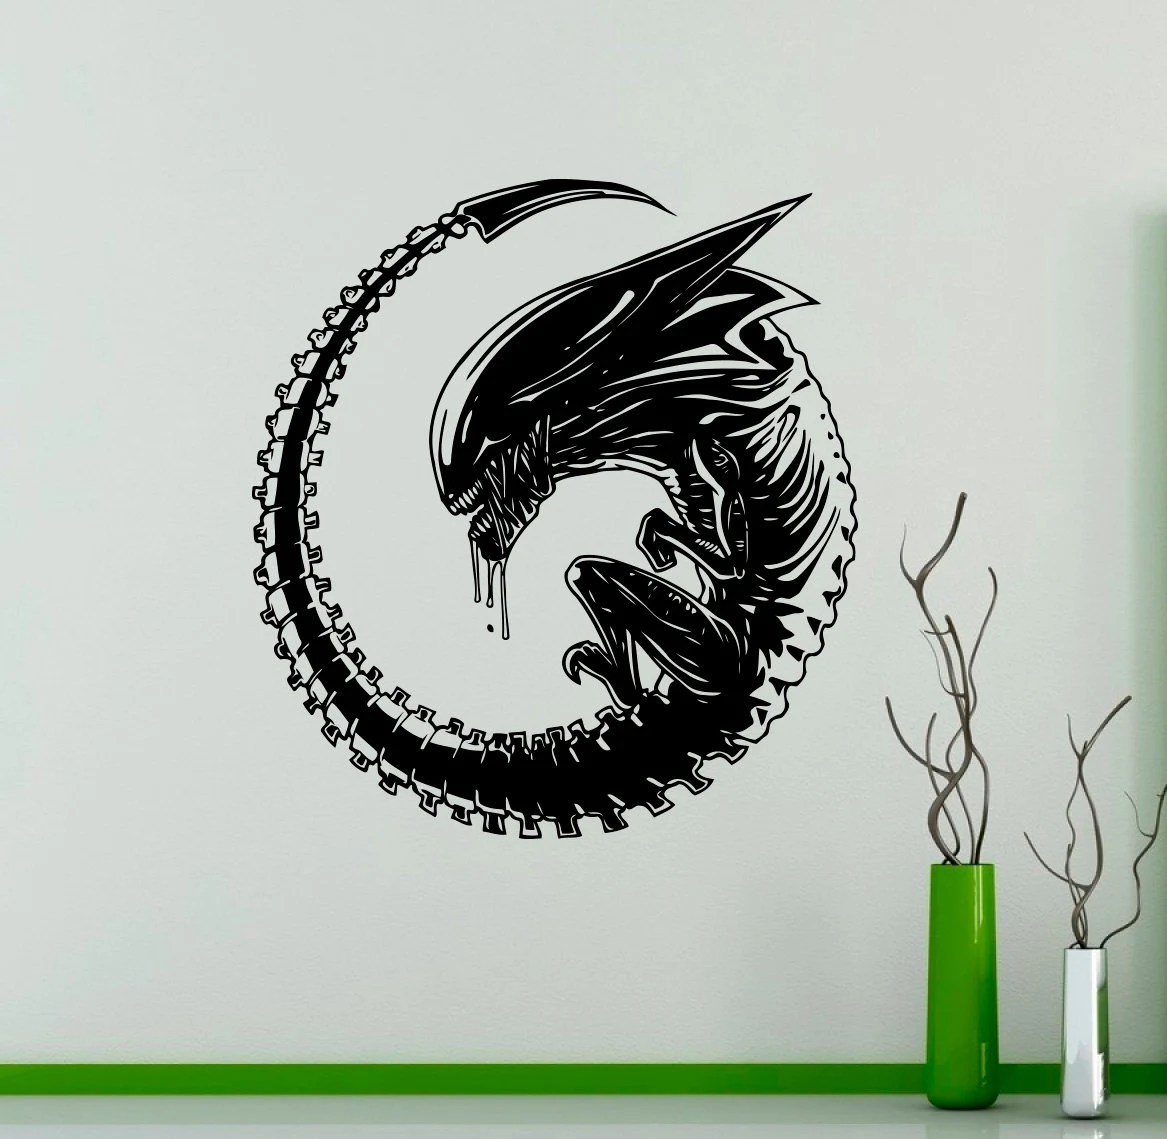 Horror Woonkamer Alien Wall Decal Film Horror Film Muur Vinyl Sticker Muur Huis Interieur Woonkamer Decor Verwisselbare Stickers 25 Avp